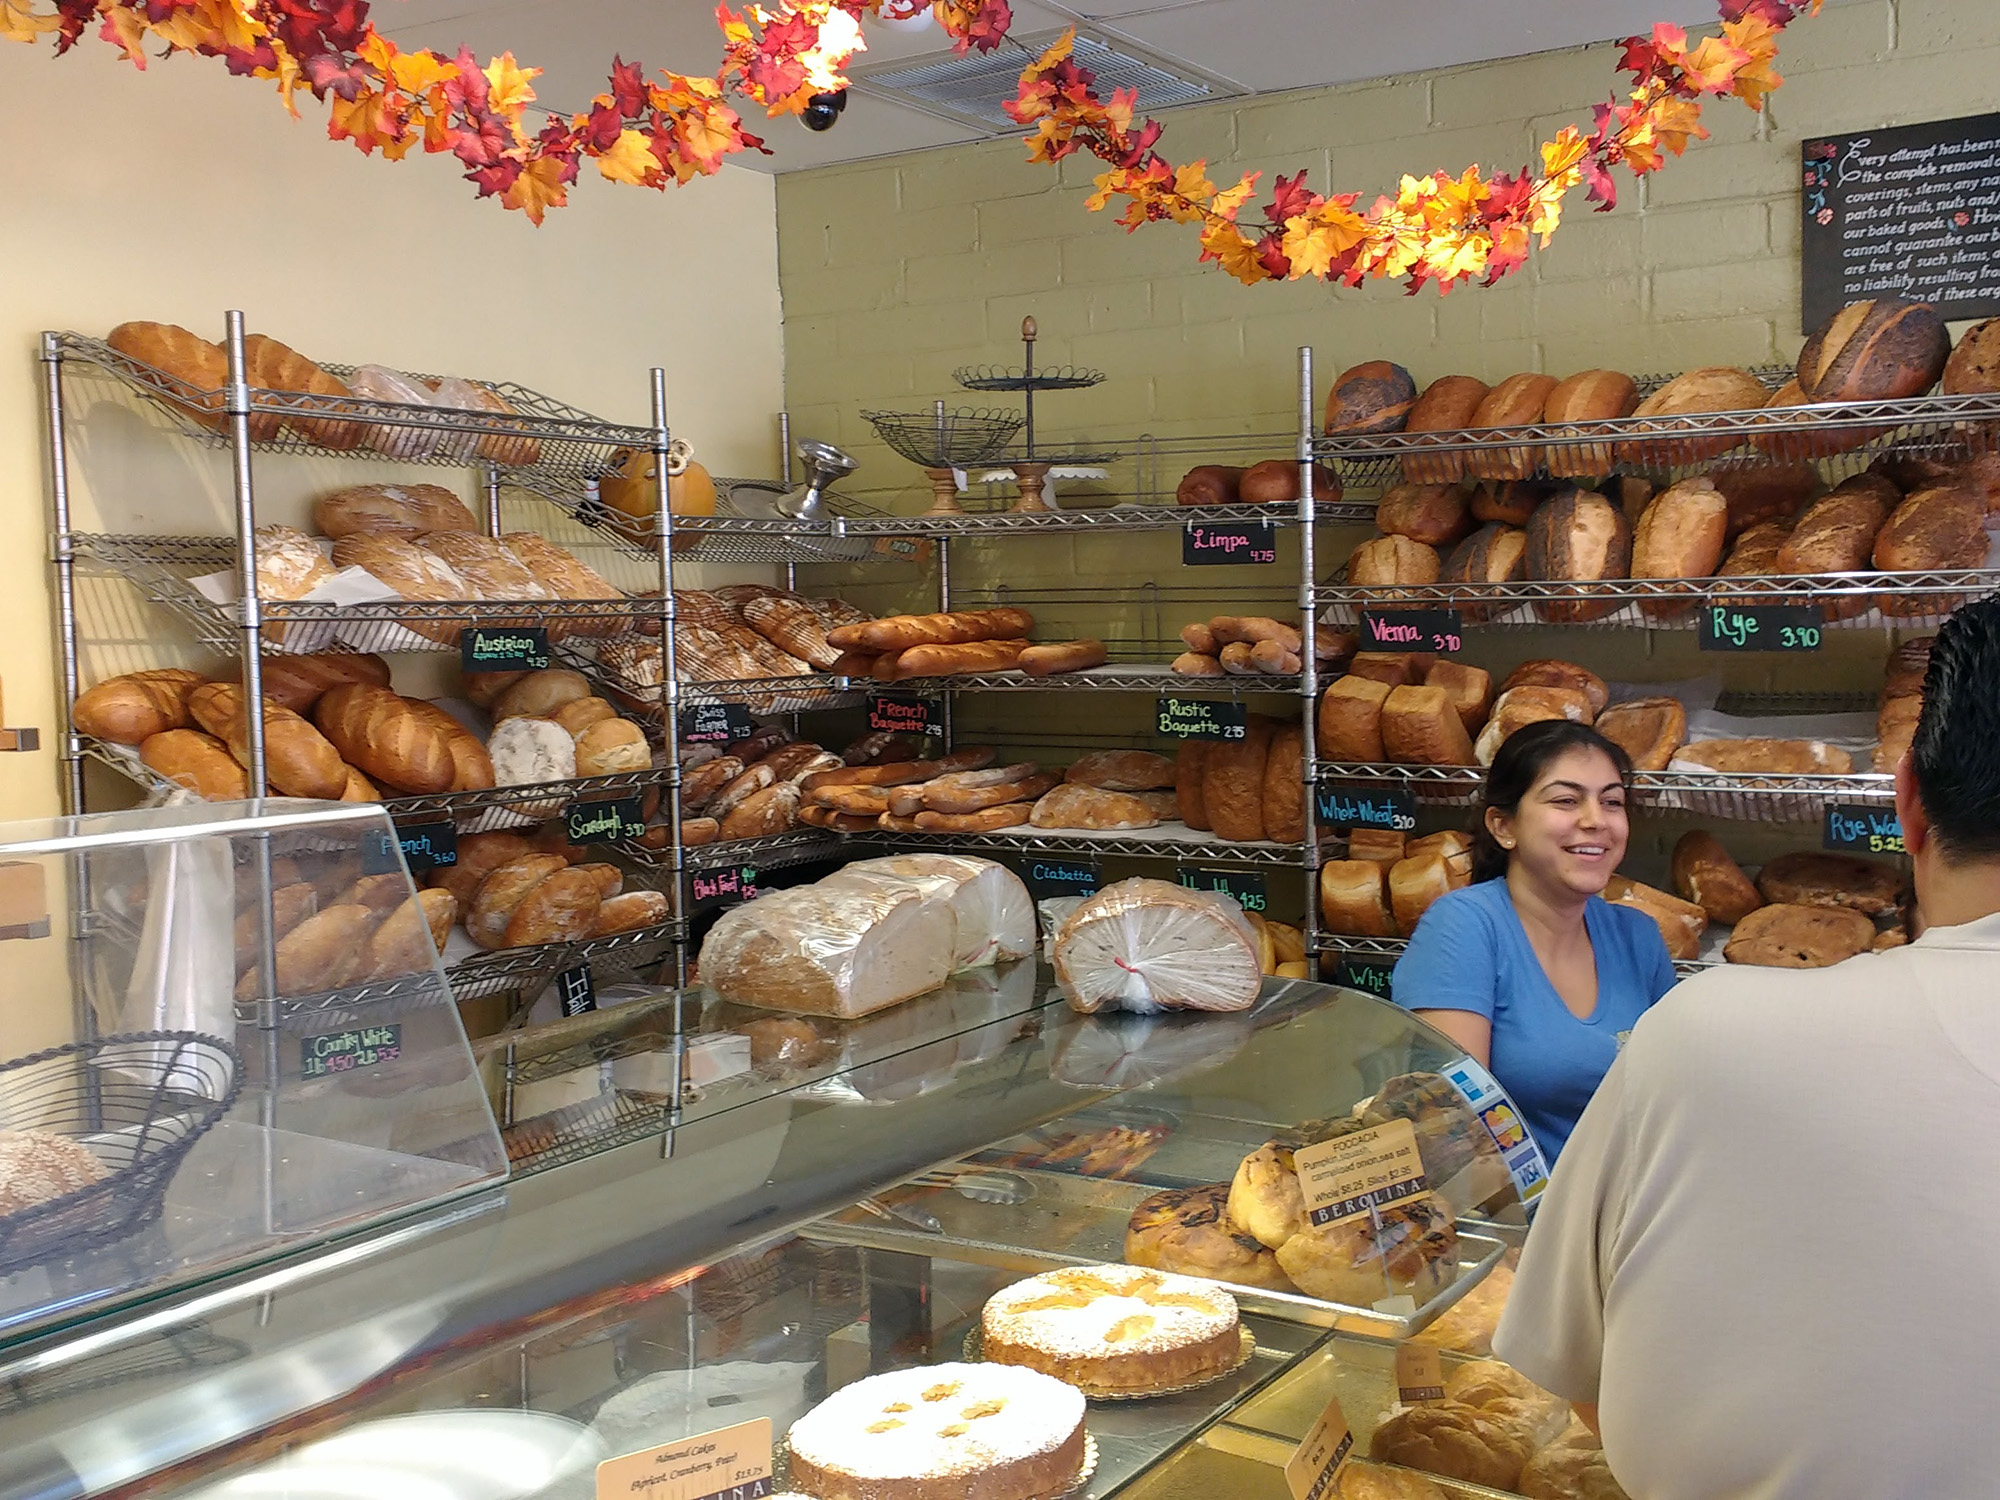 A rich assortment of German and other European Breads behind the counter at Berolina Bakery in Glendale, CA